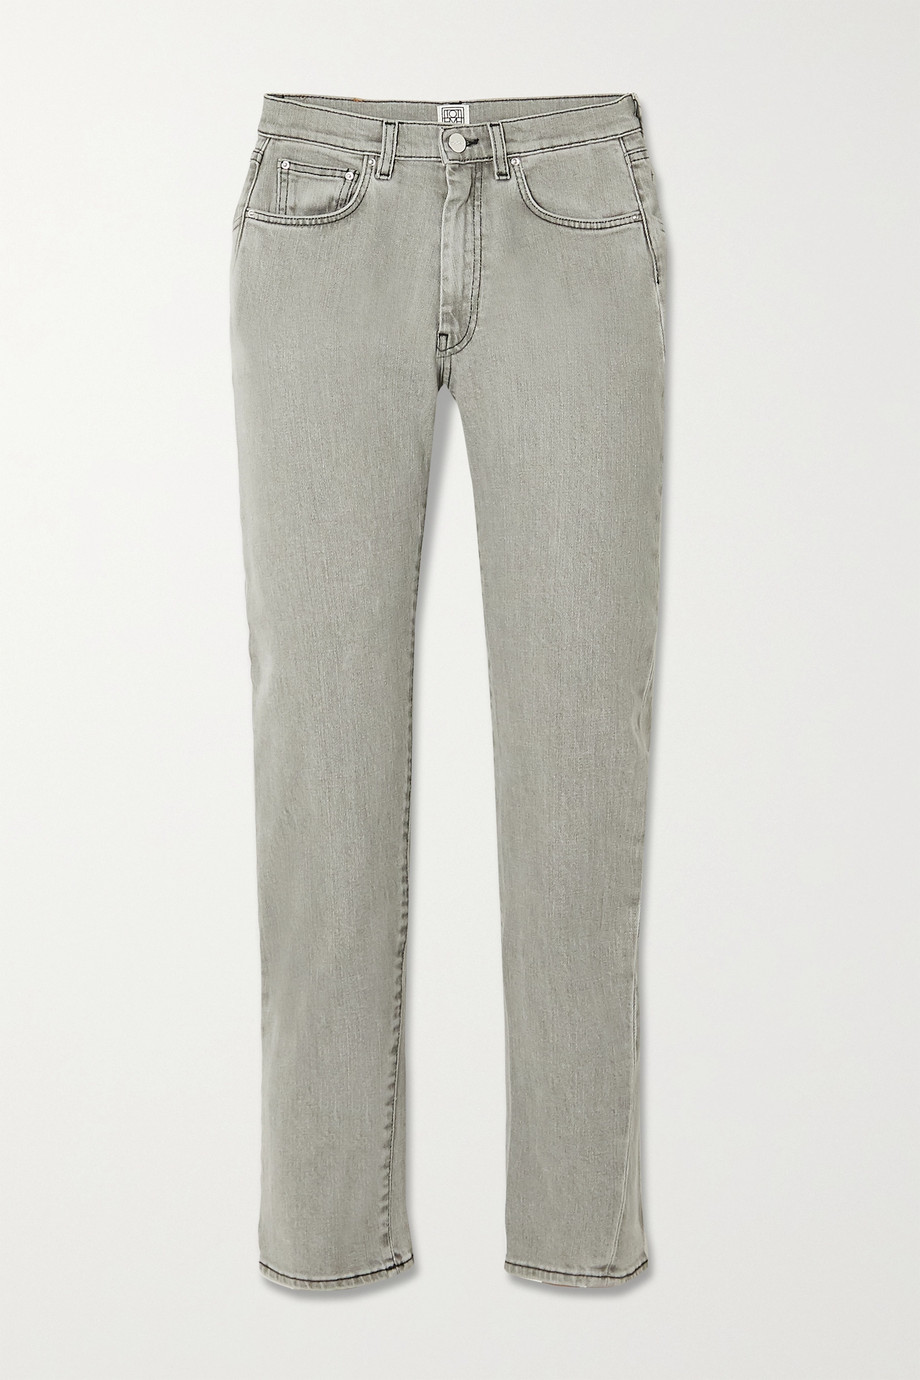 Totême Original cropped high-rise straight-leg jeans